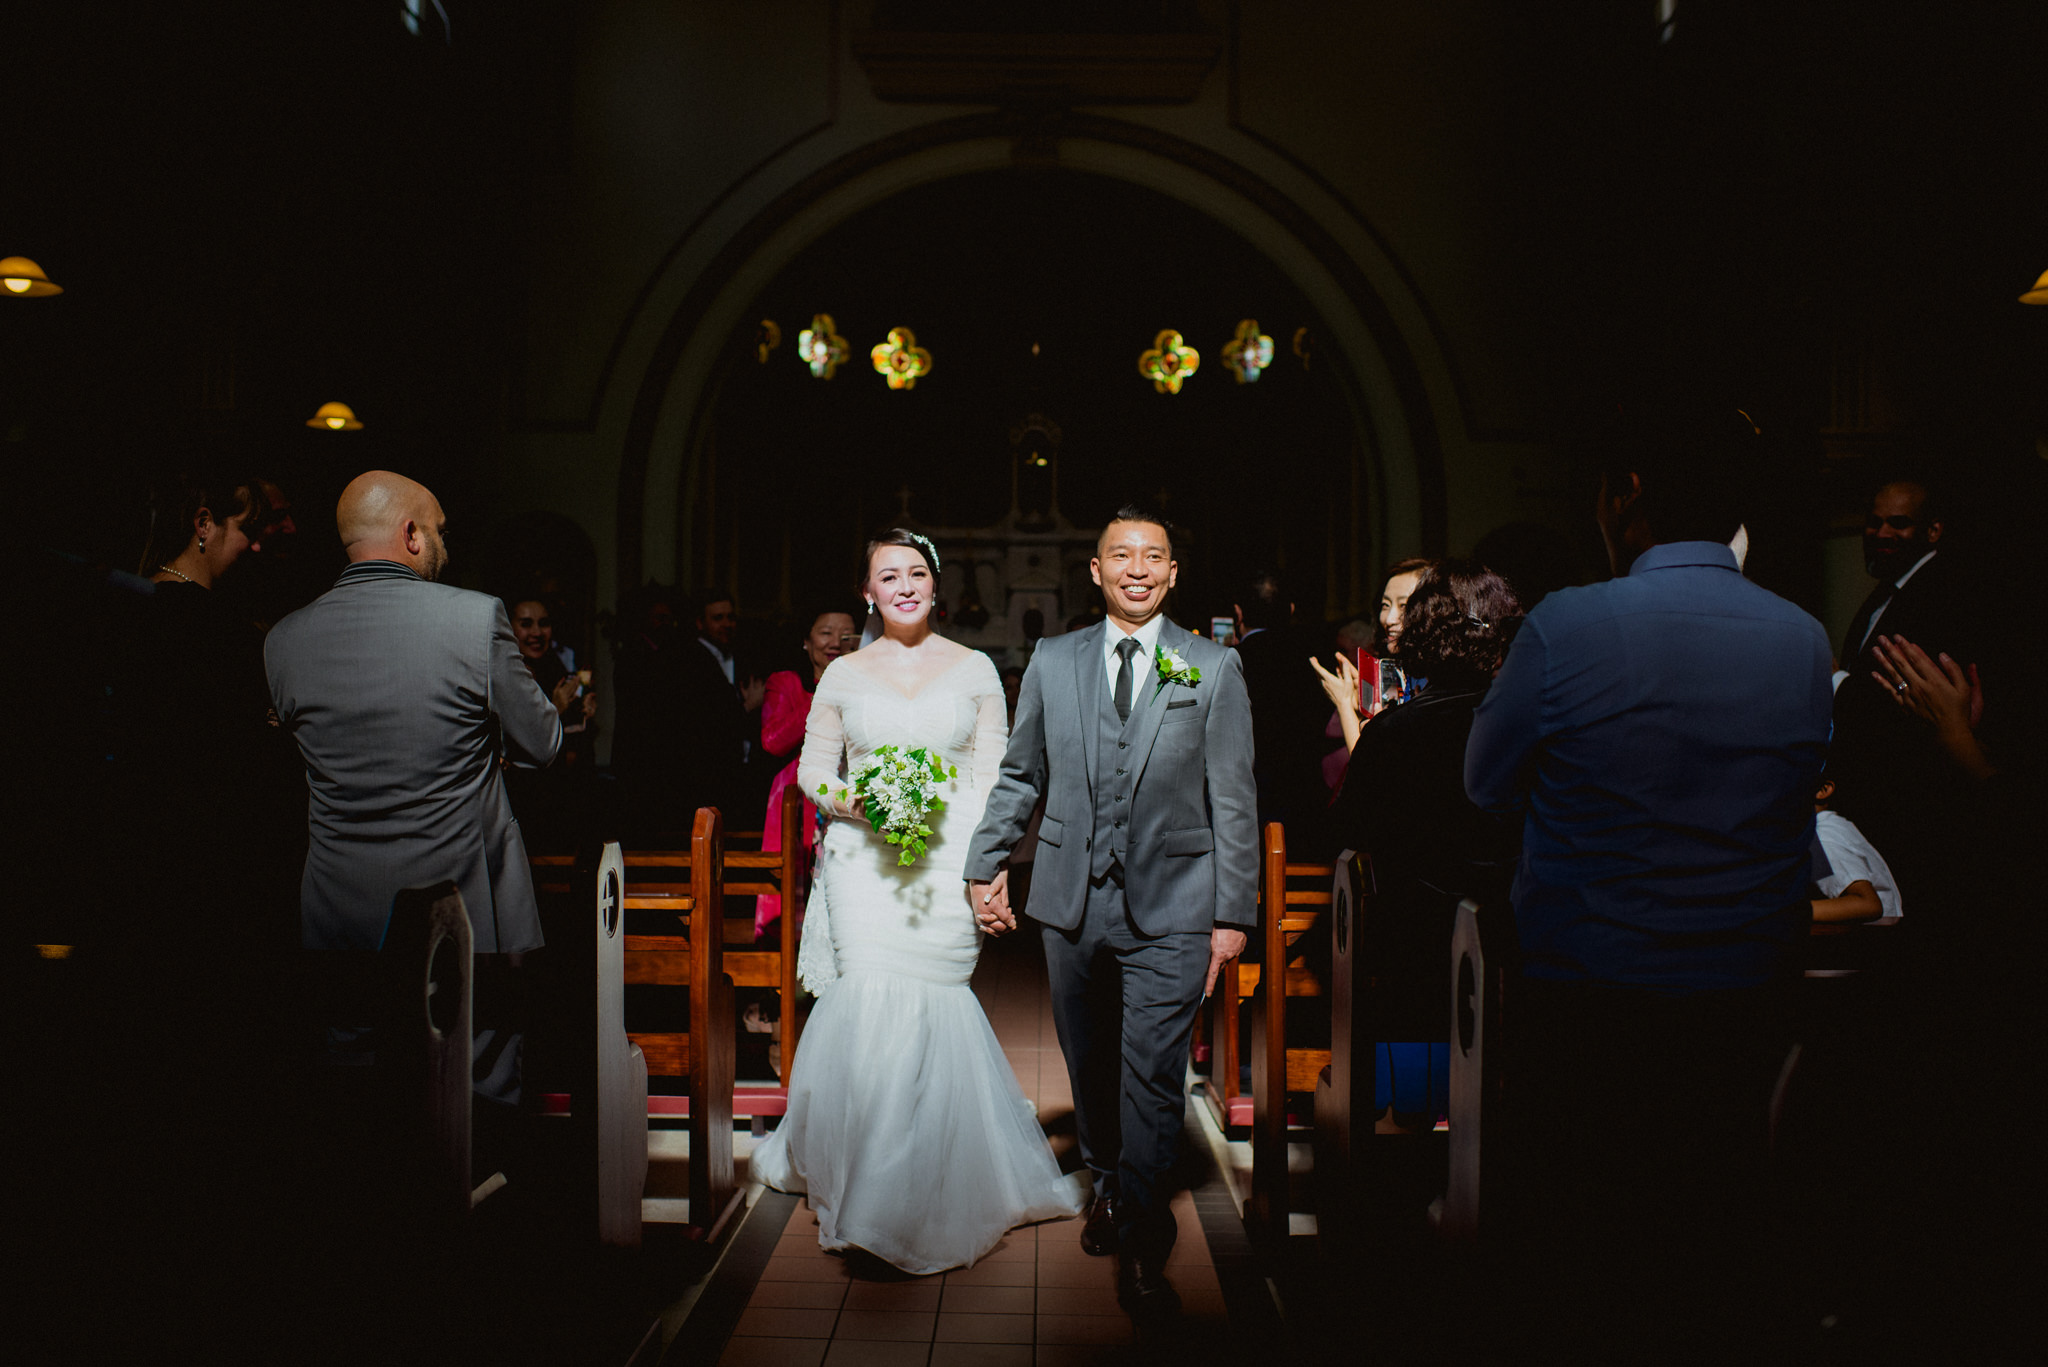 A bride and groom walk through a ray of sunlight in a dark church